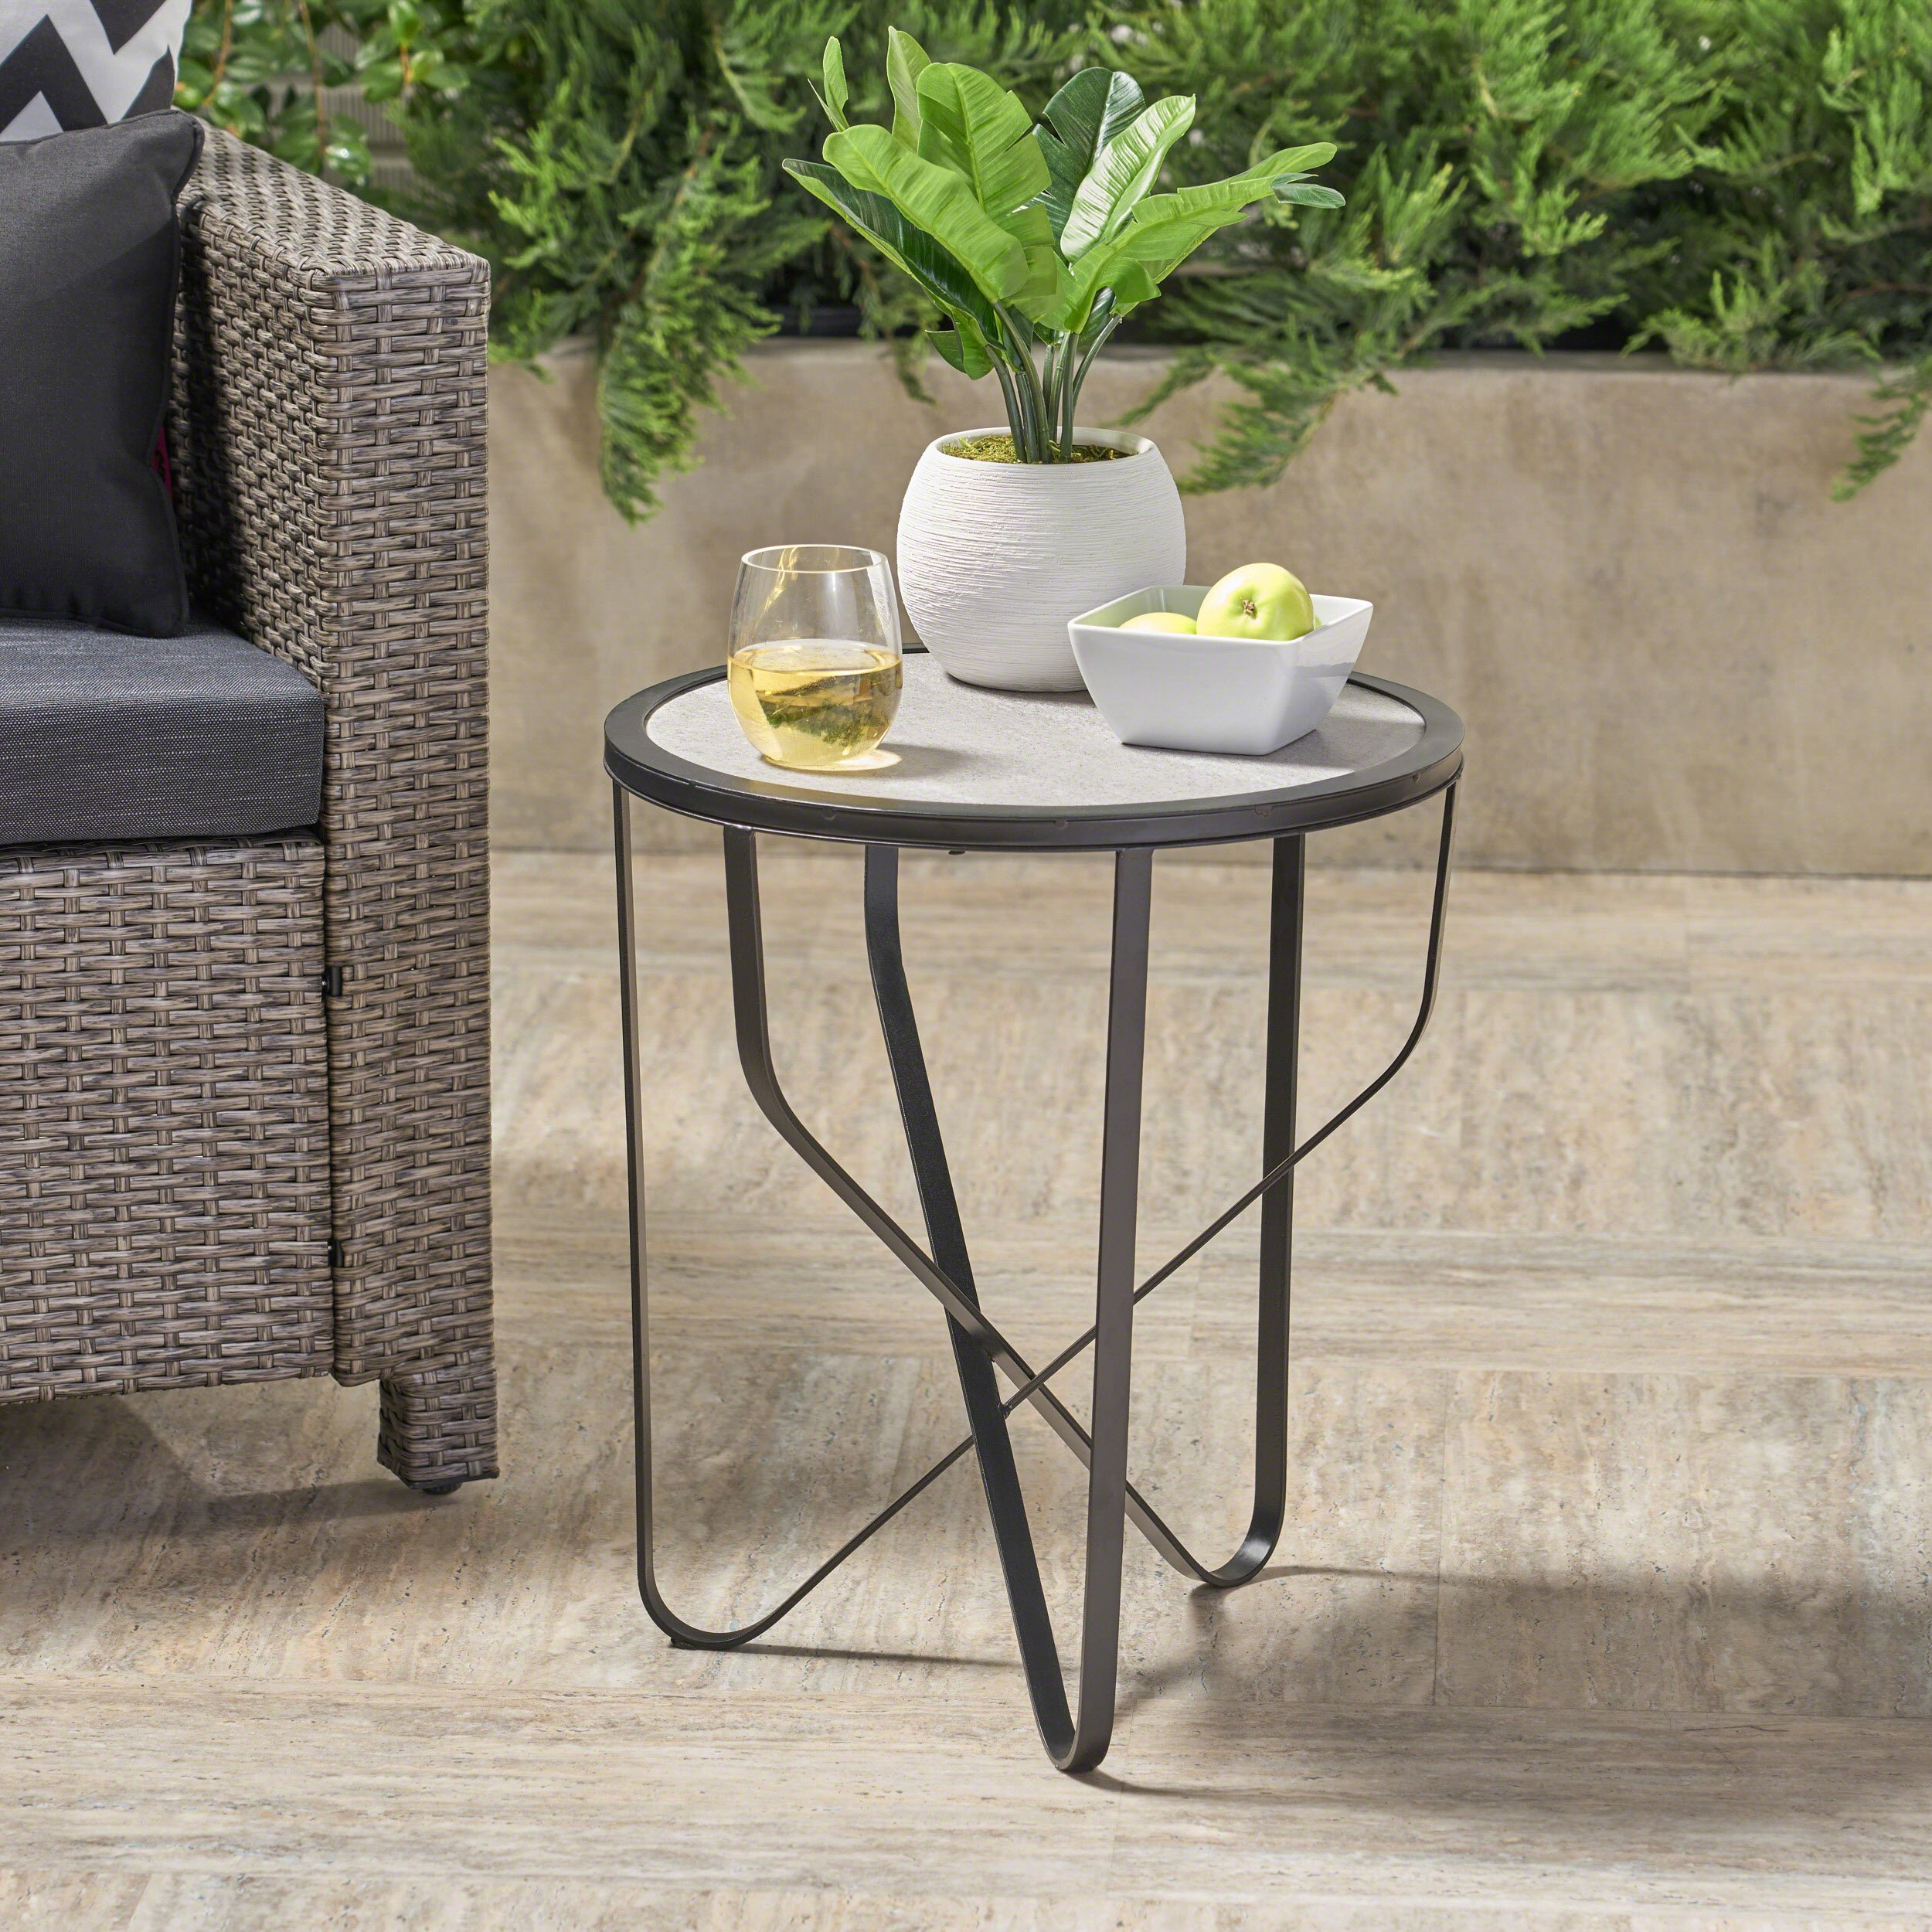 Great Deal Furniture Noah Outdoor 18 Inch Light Grey Finish Ceramic Tile Side Table